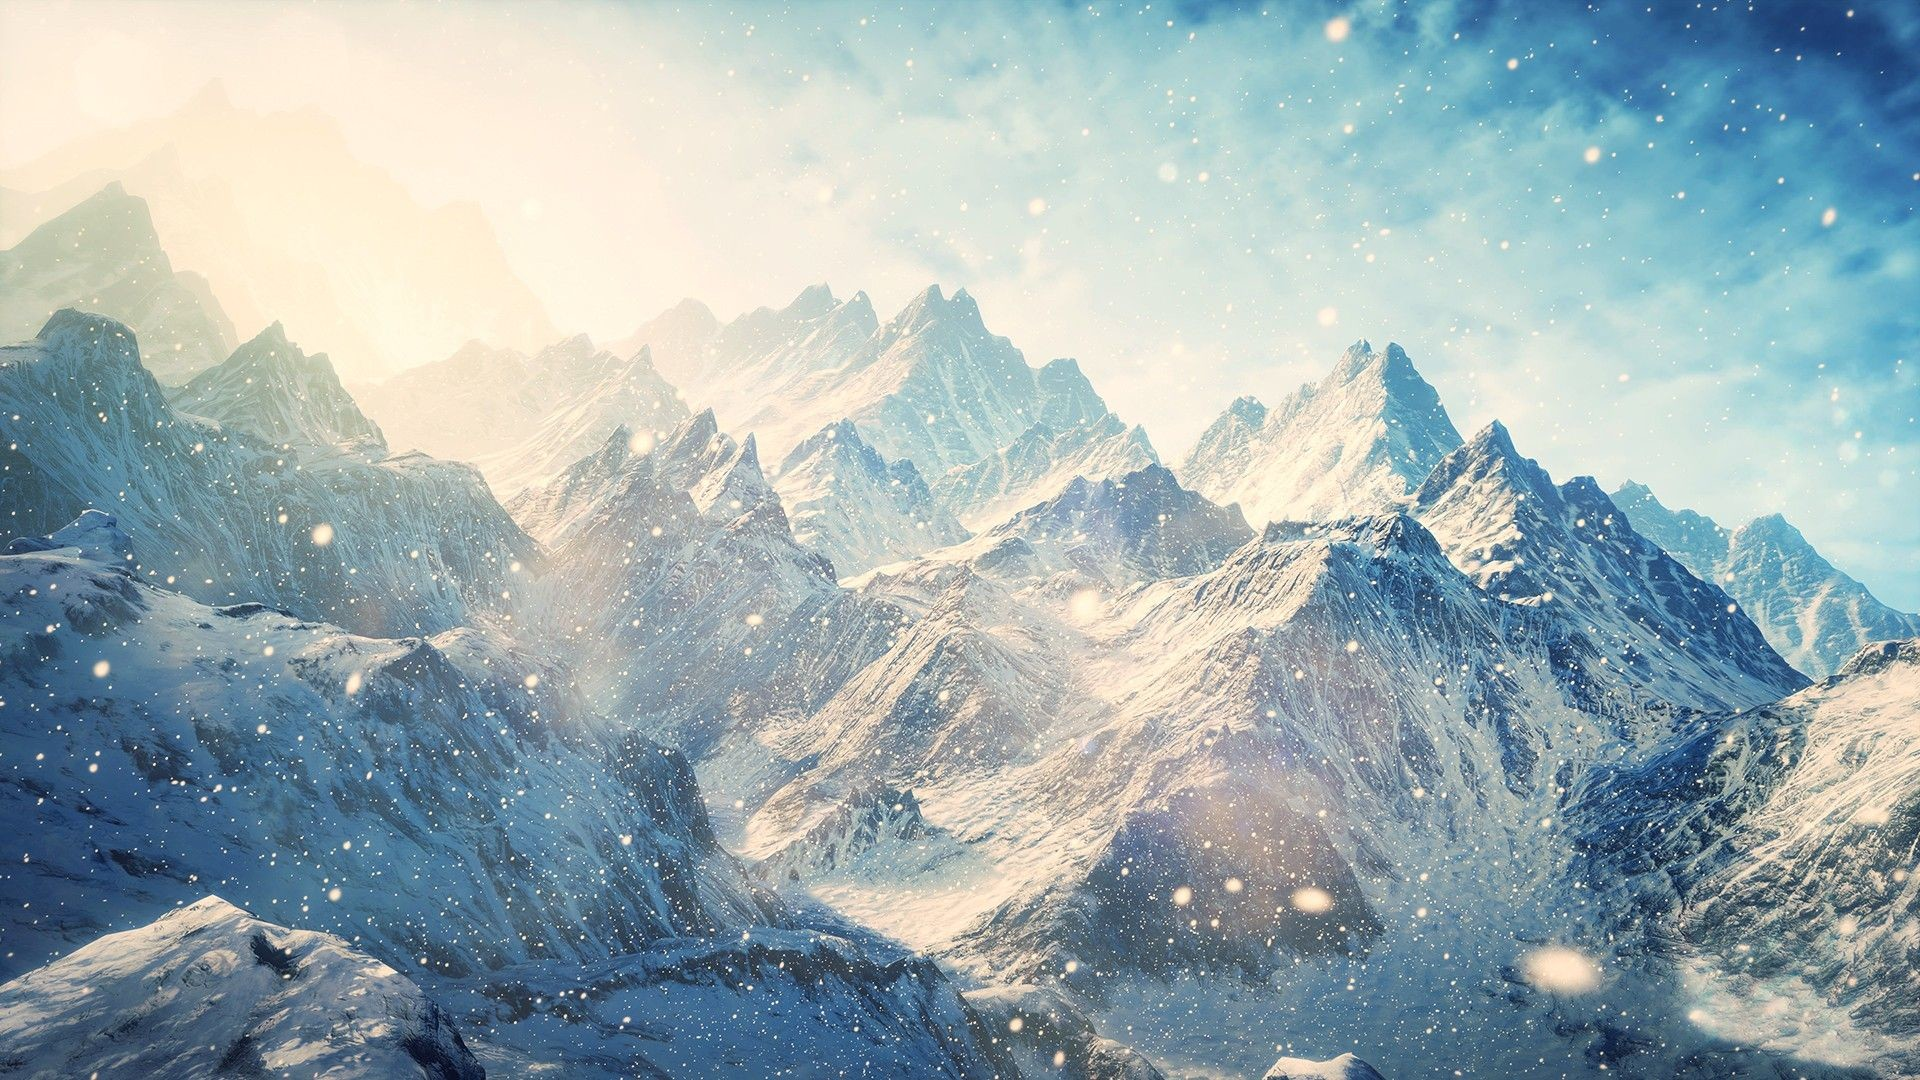 Winter Mountains With Snow HD Wallpaper » FullHDWpp – Full HD .